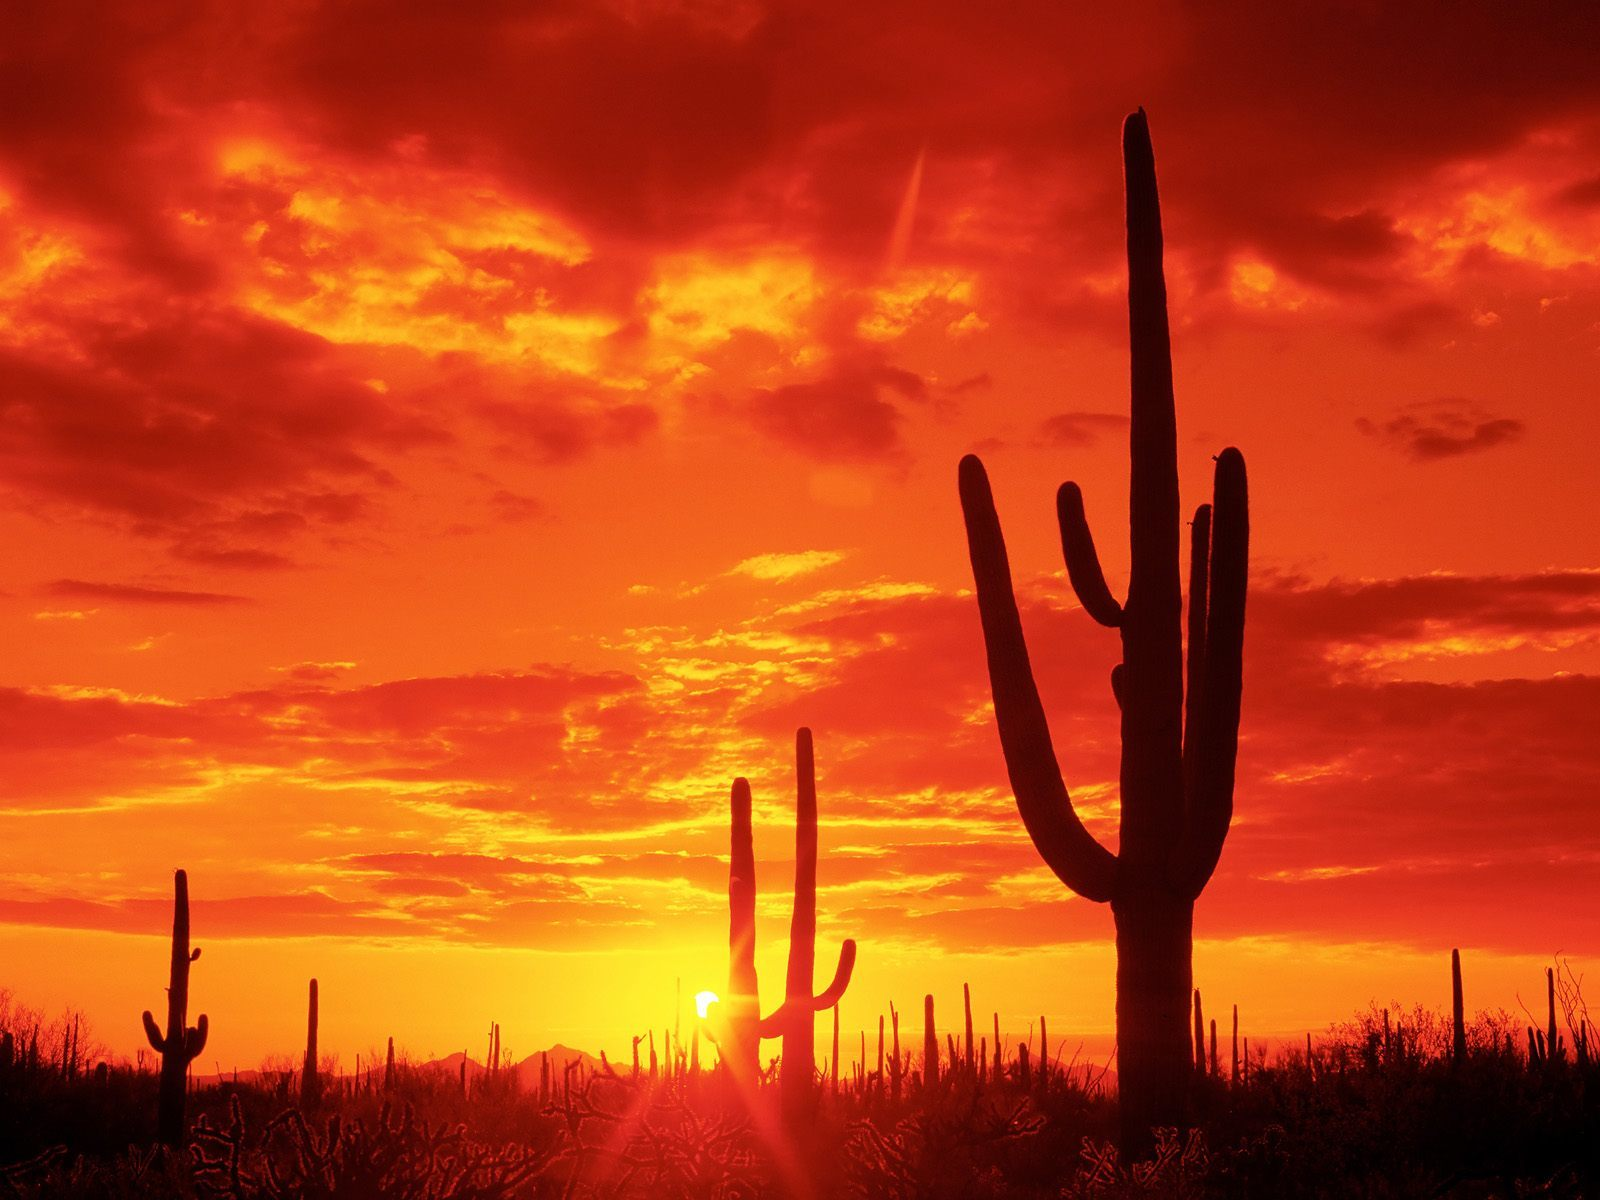 sunset deserts silhouettes Arizona HD Wallpaper